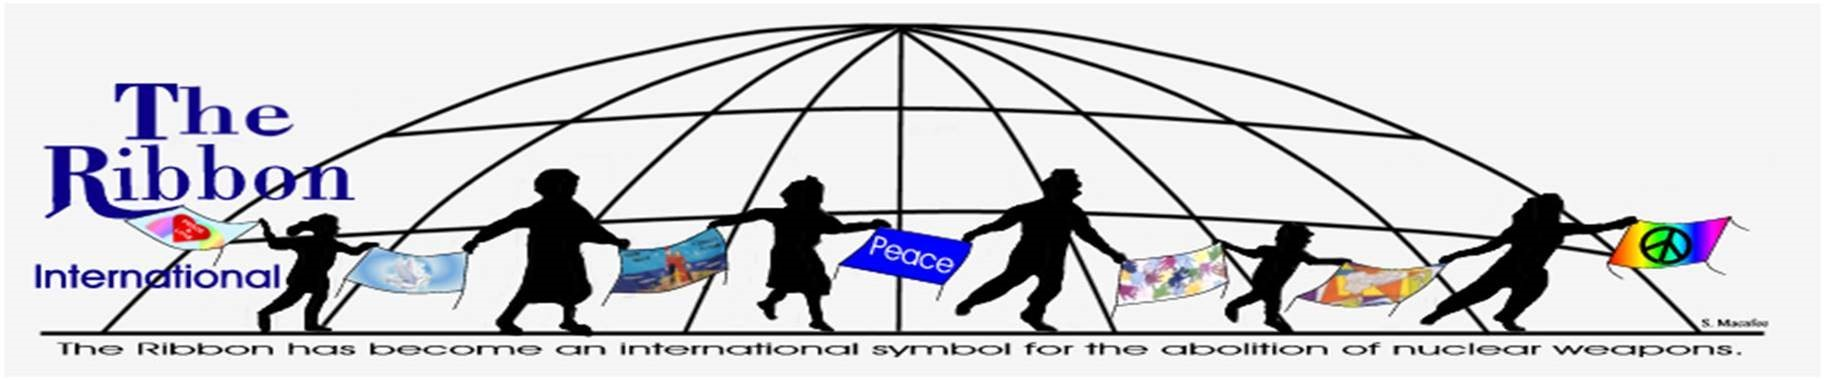 Peace Ribbon 2020  Commemorating the 75th Anniversary of Hiroshima and Nagasaki